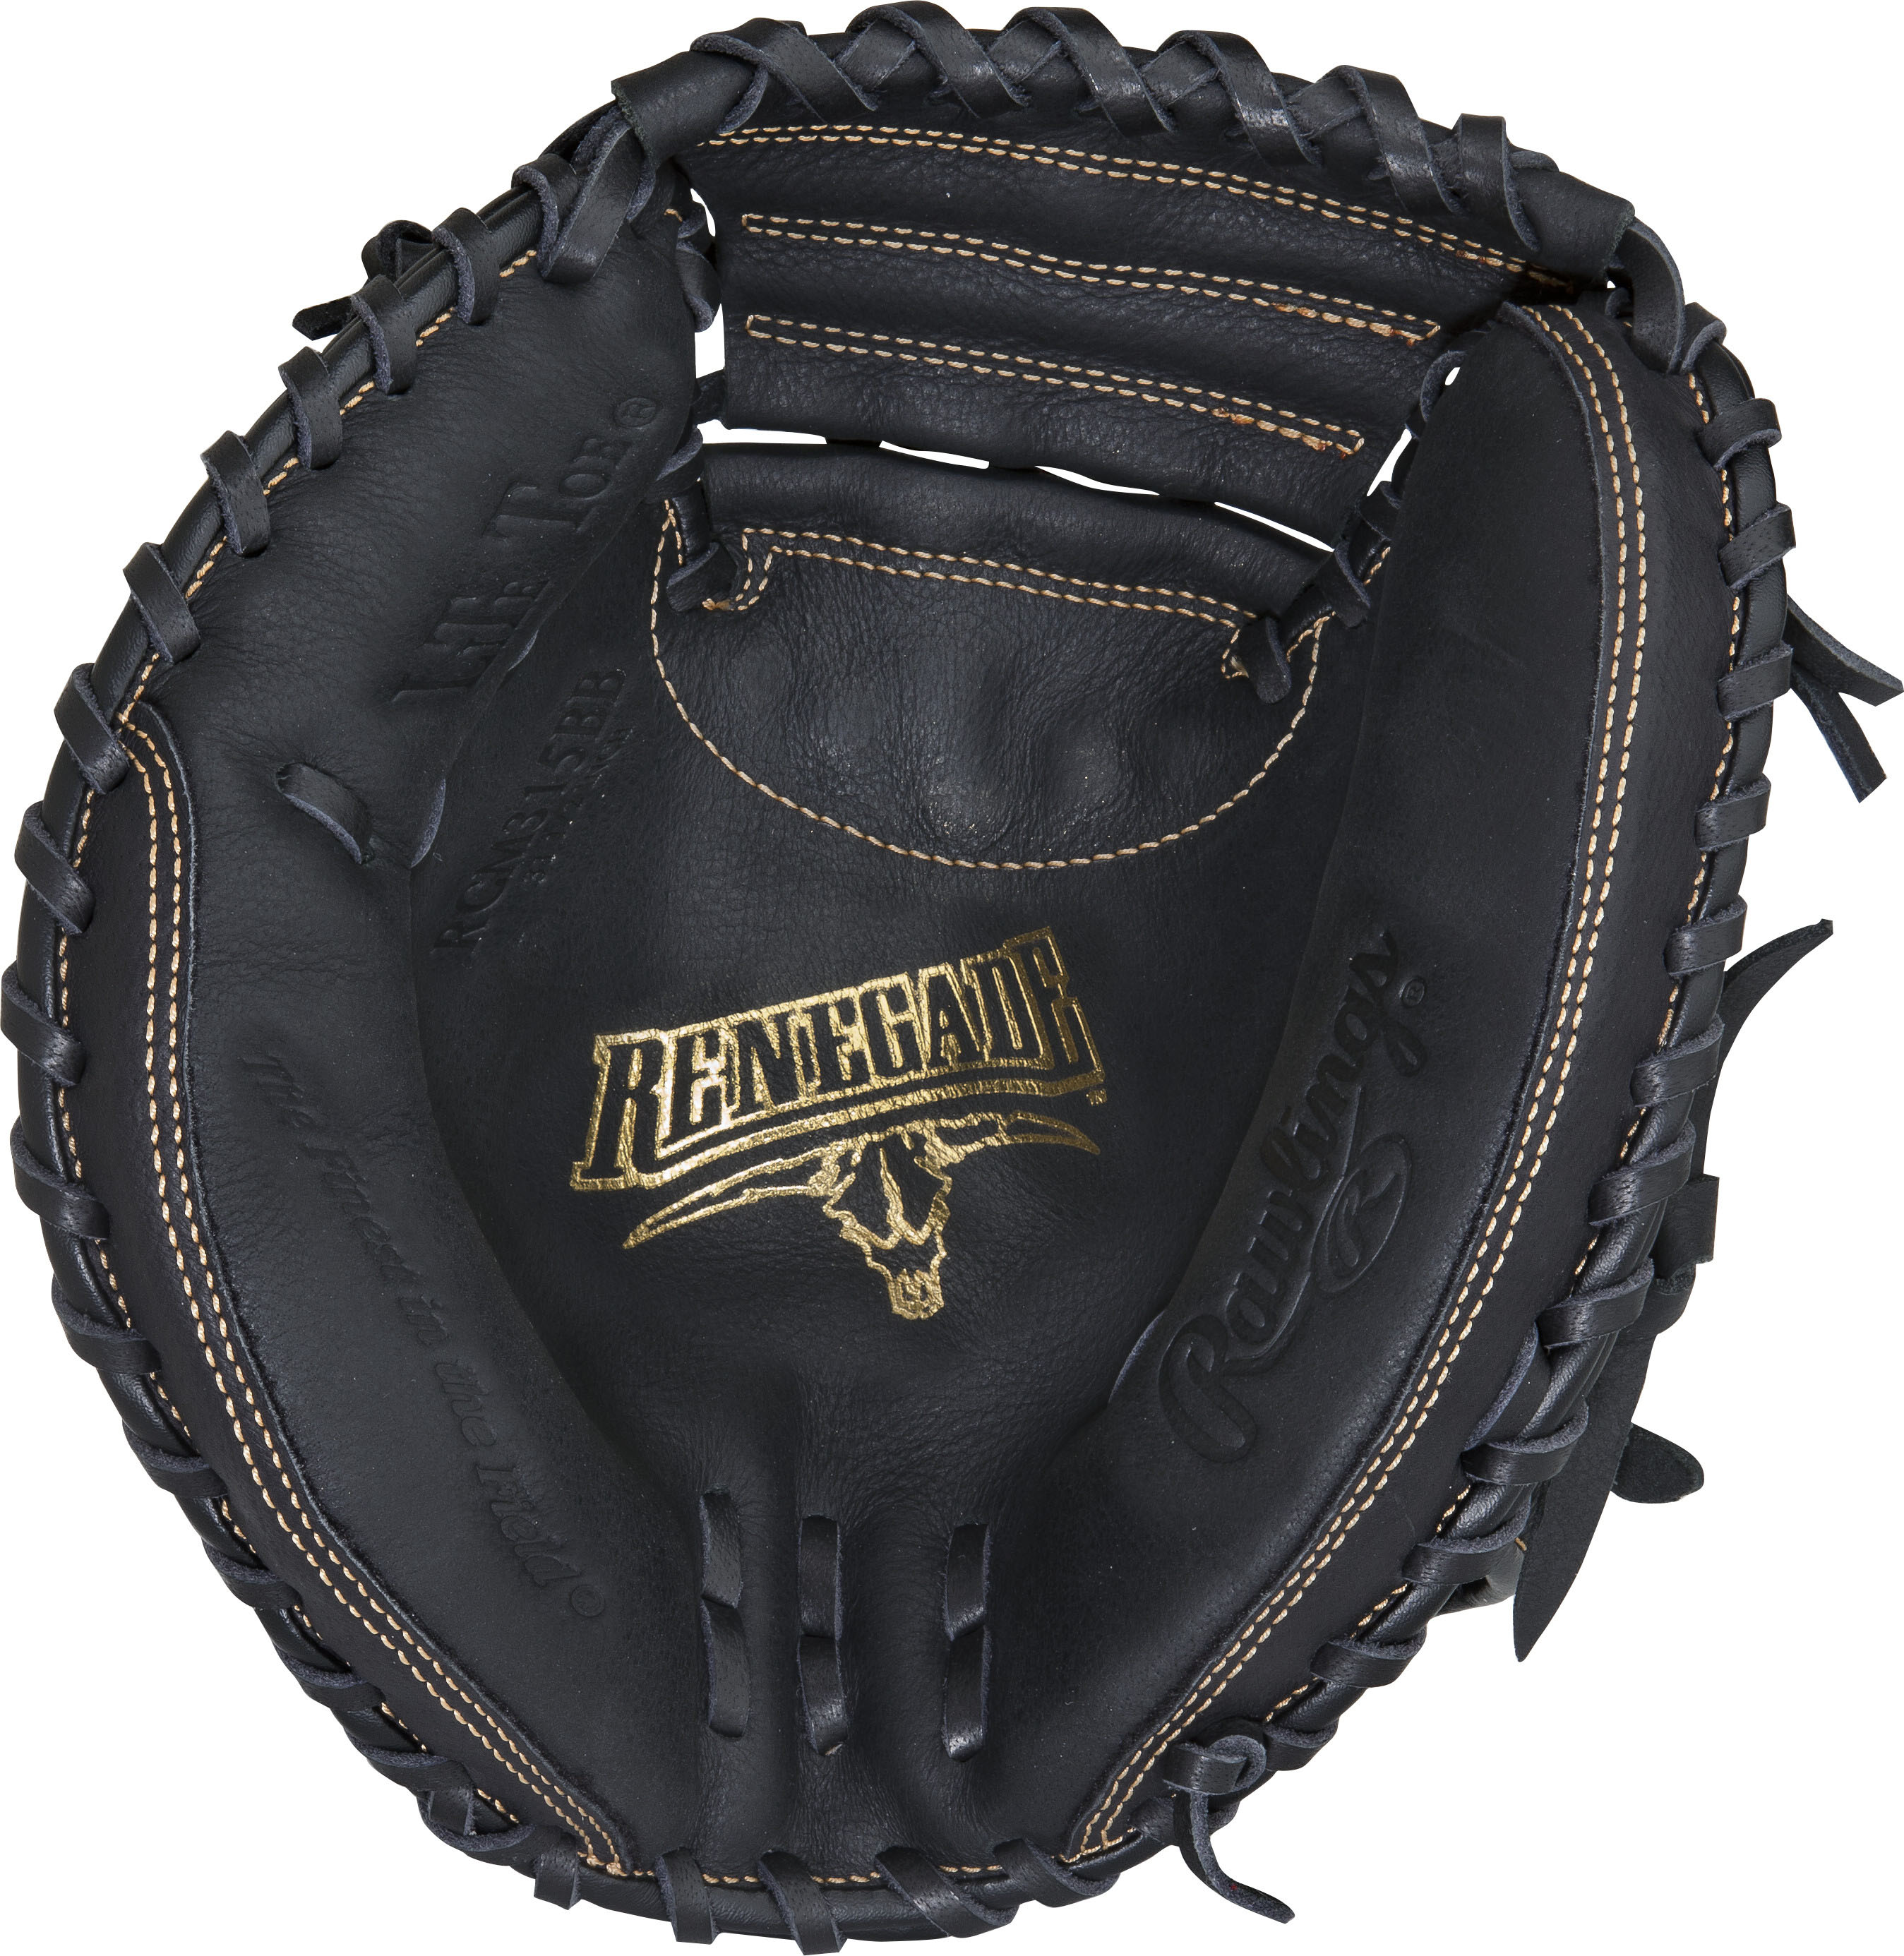 http://www.bestbatdeals.com/images/gloves/rawlings/RCM315BB_palm.jpg